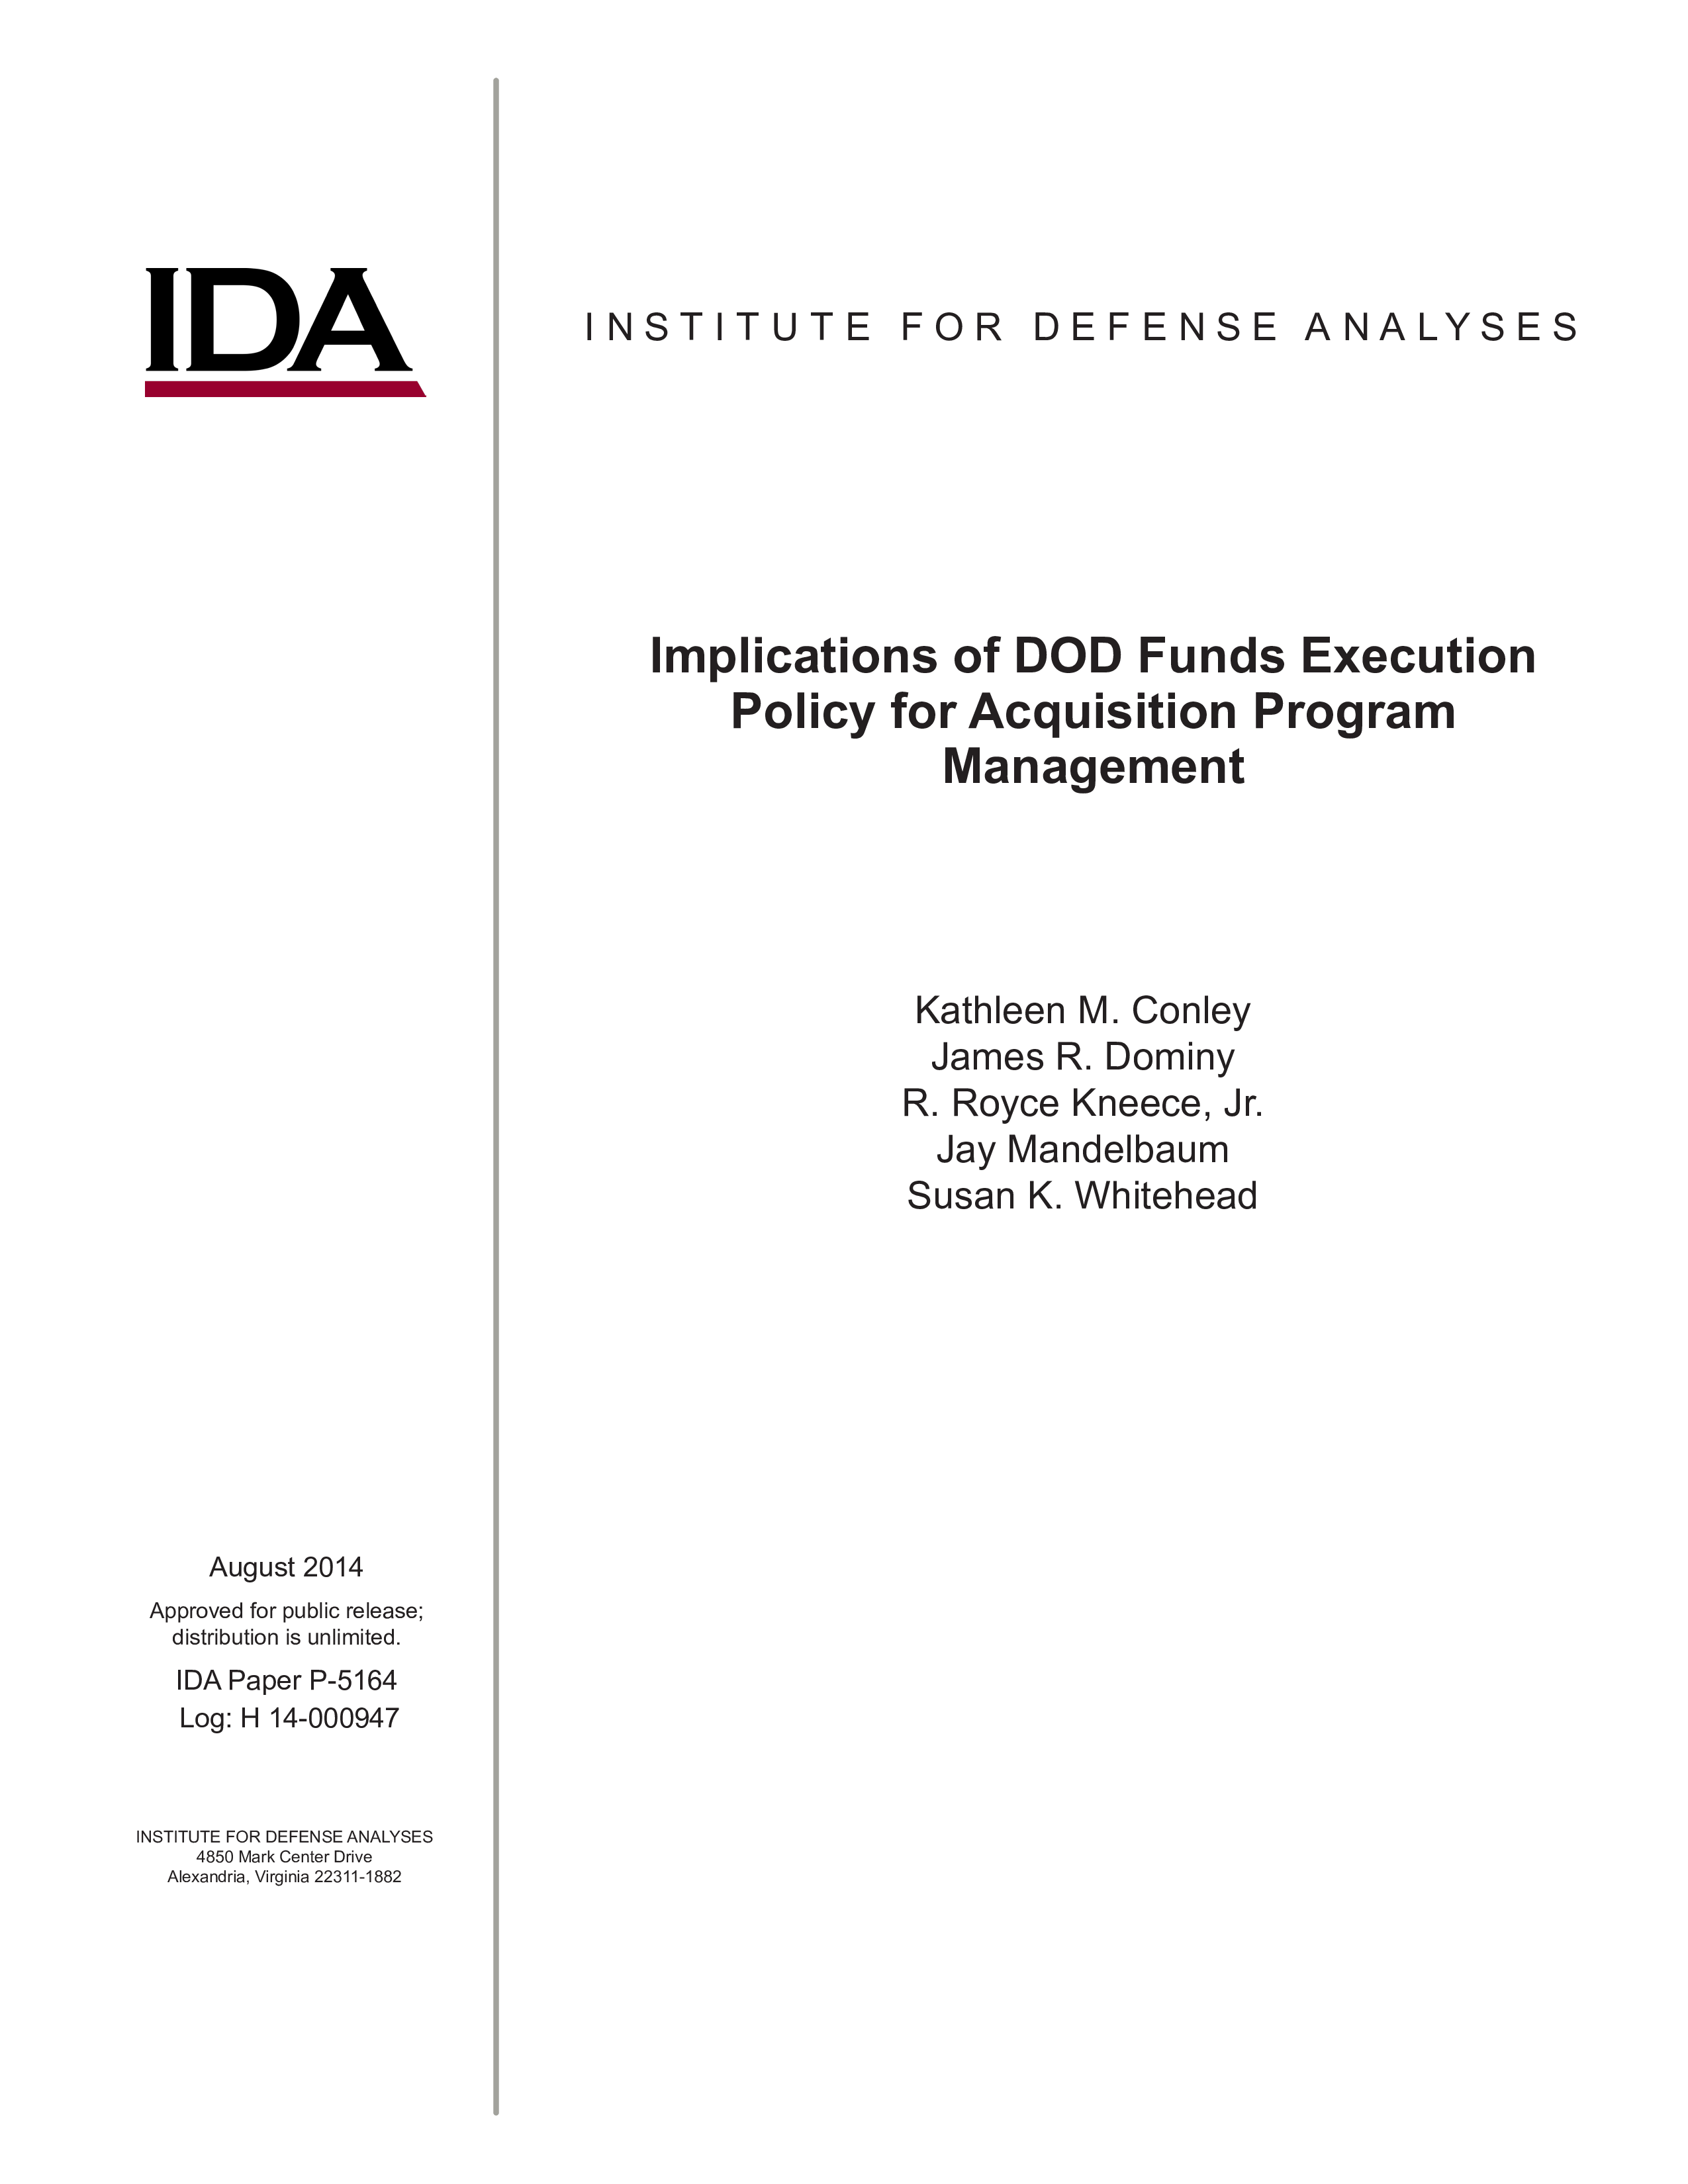 Implications of DOD Funds Execution Policy for Acquisition Program Management